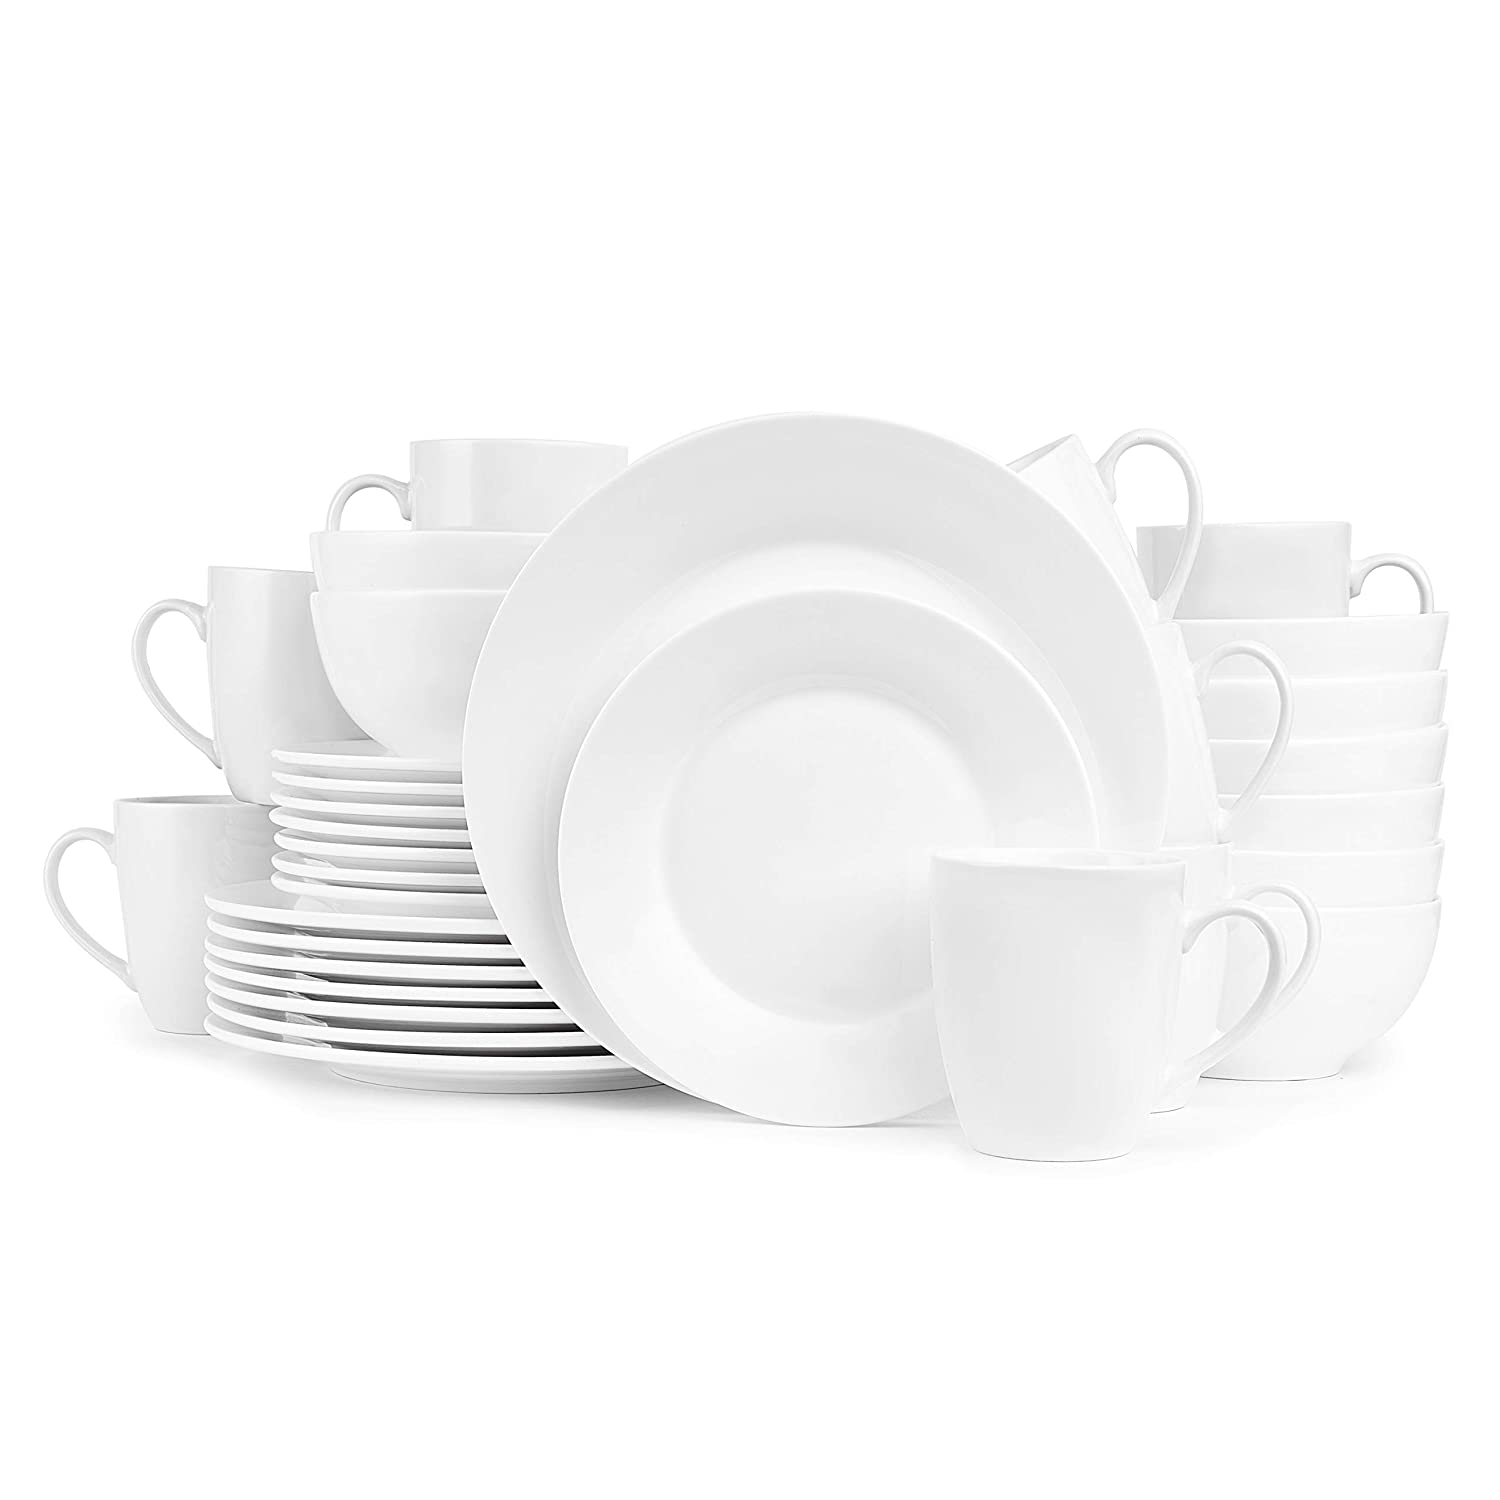 Stone lain Evermore Porcelain White Body Round Dinnerware Set, 32 Pieces Service for 8